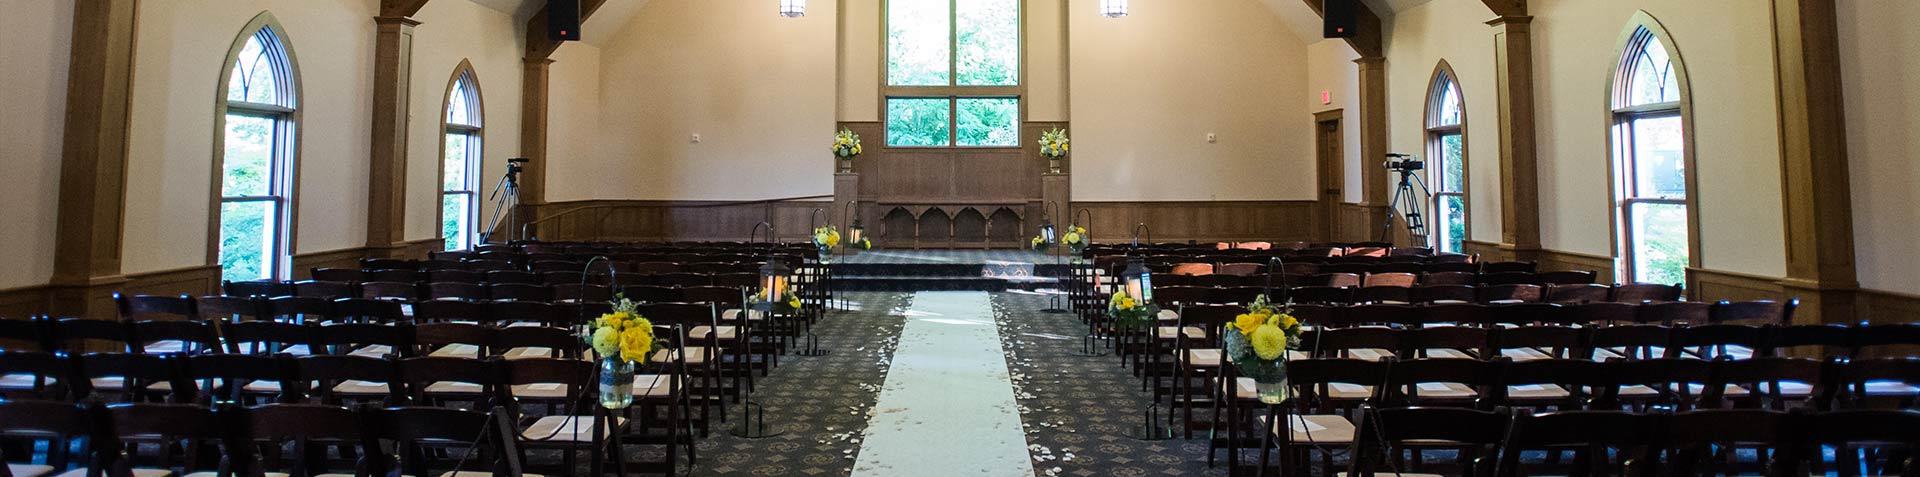 Portland Oregon Wedding Chapel Venue Abernethy Center